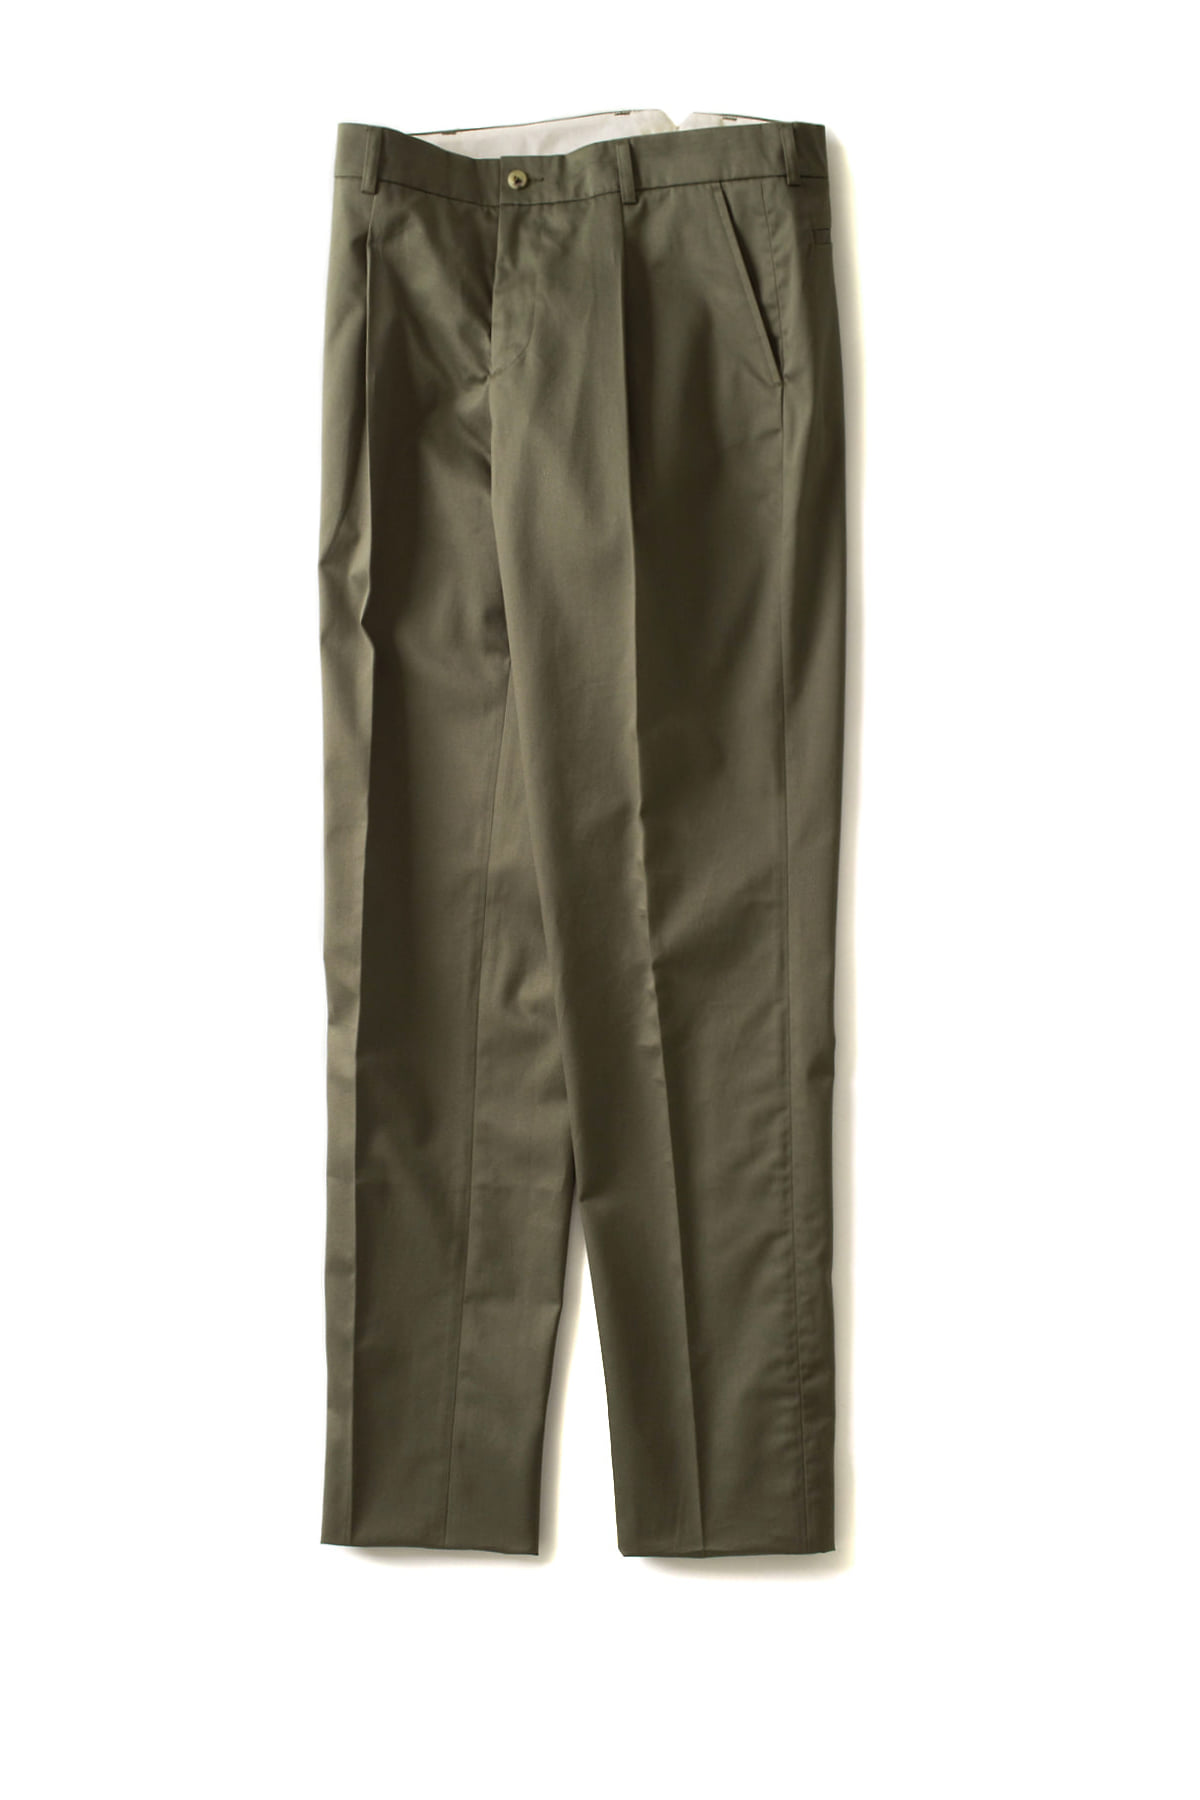 de bonne facture : One Pleat Trousers (Khaki)